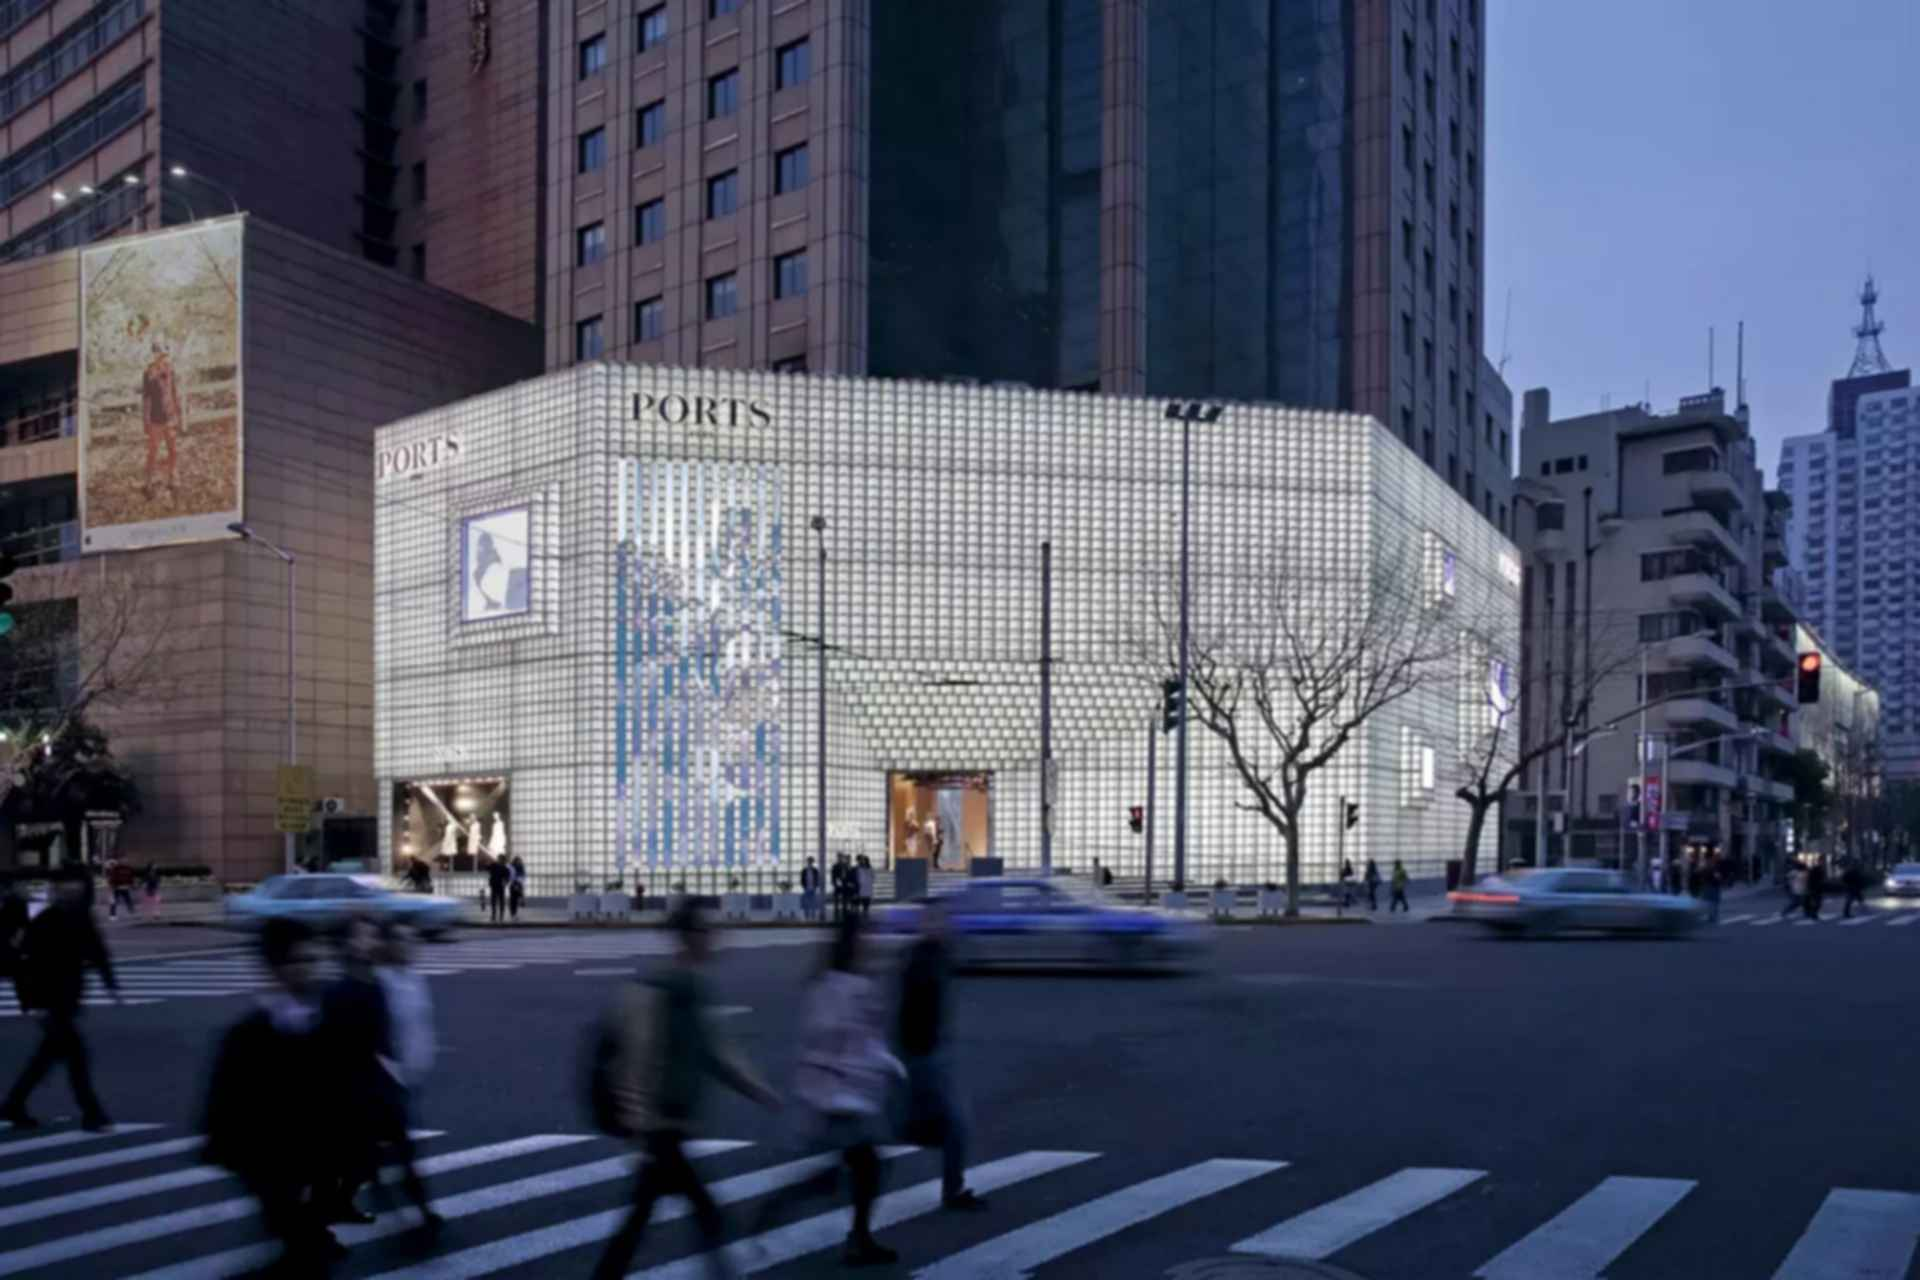 Ports Flagship Store - Exterior/Street View